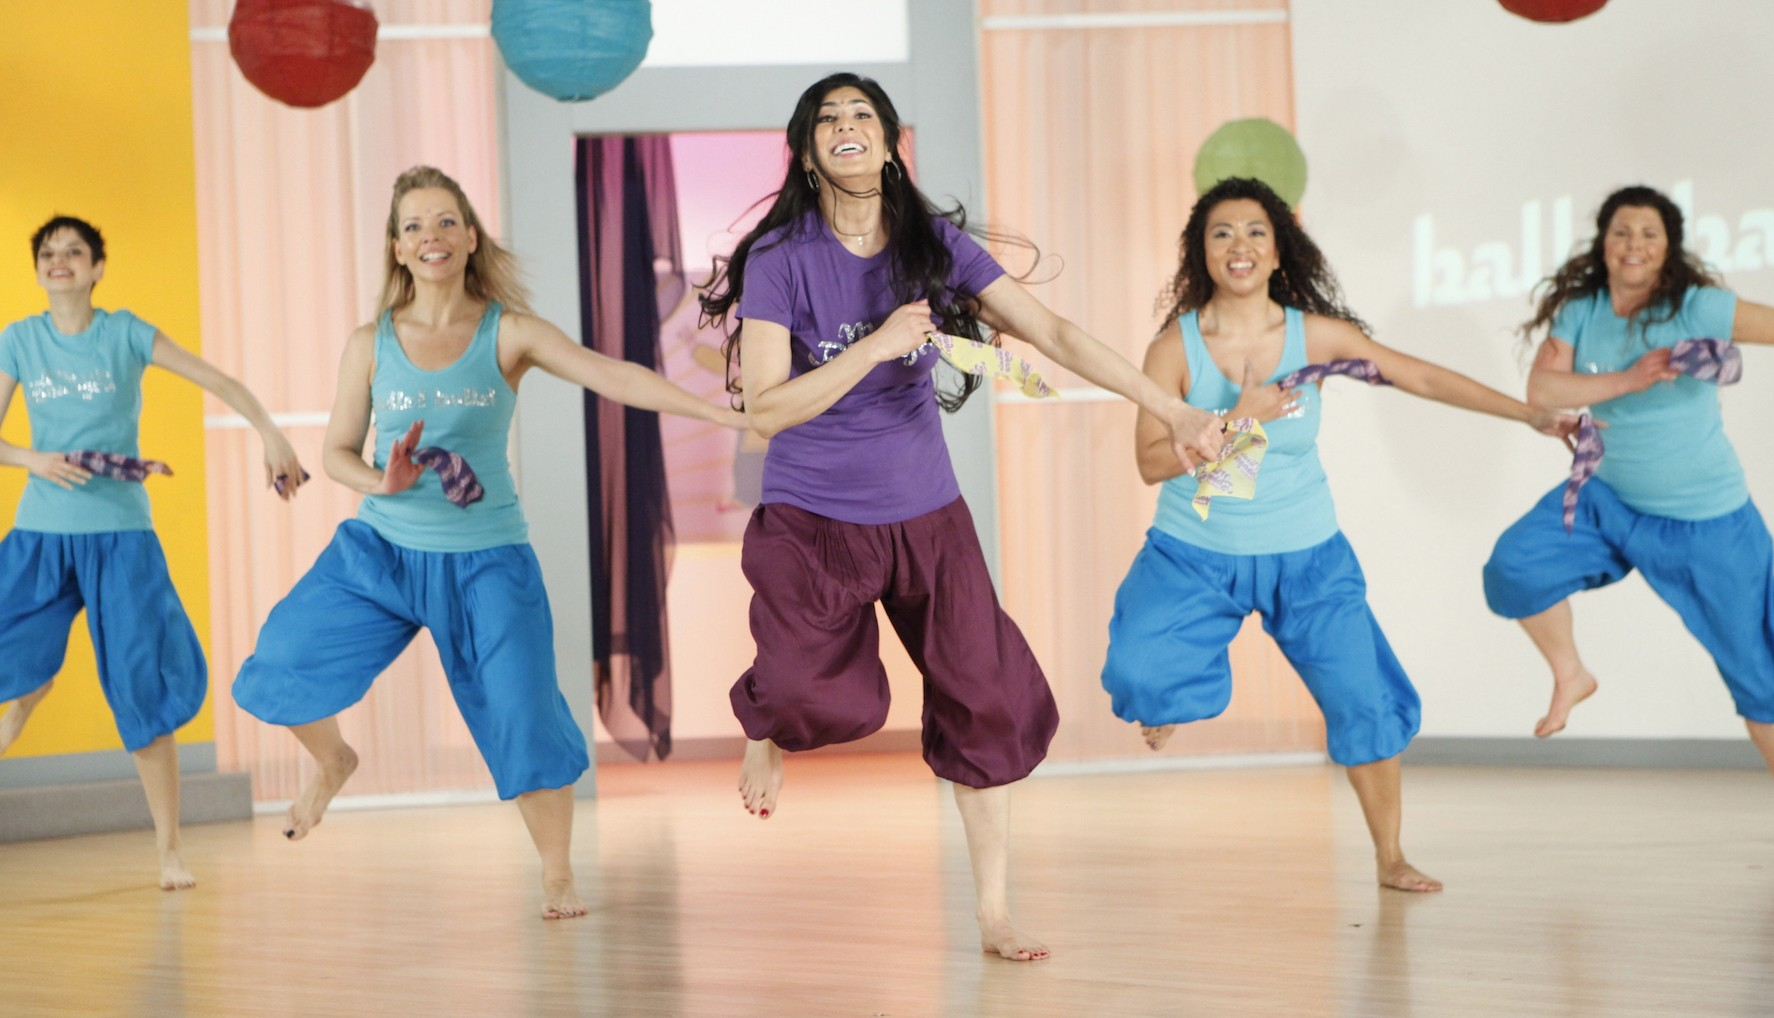 We Did It: Masala Bhangra recommend